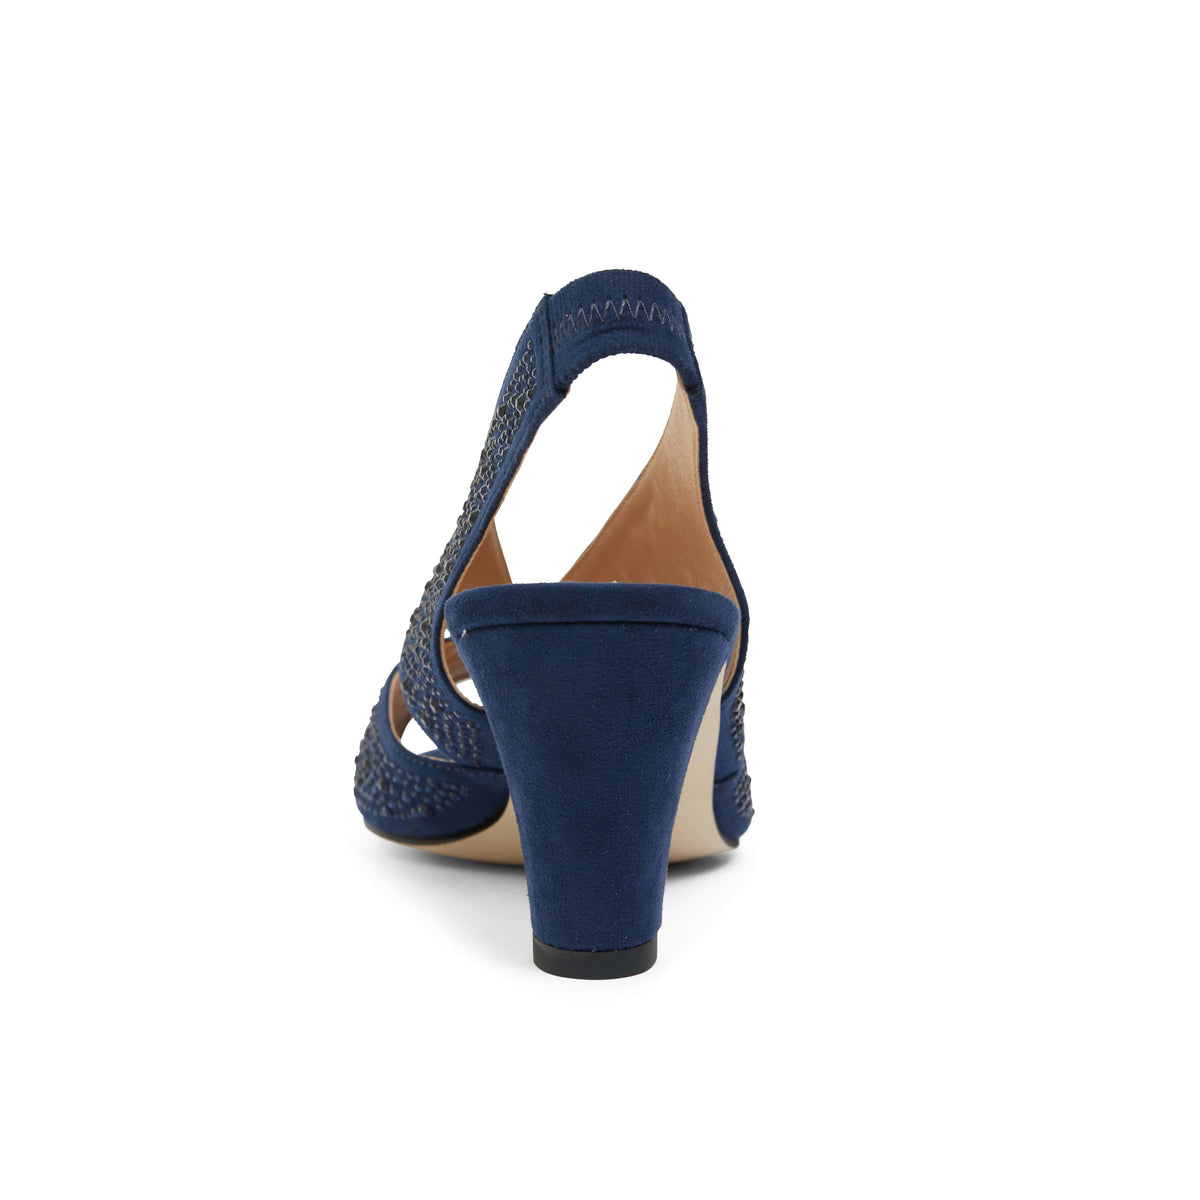 Angie Heel in Navy Sparkle